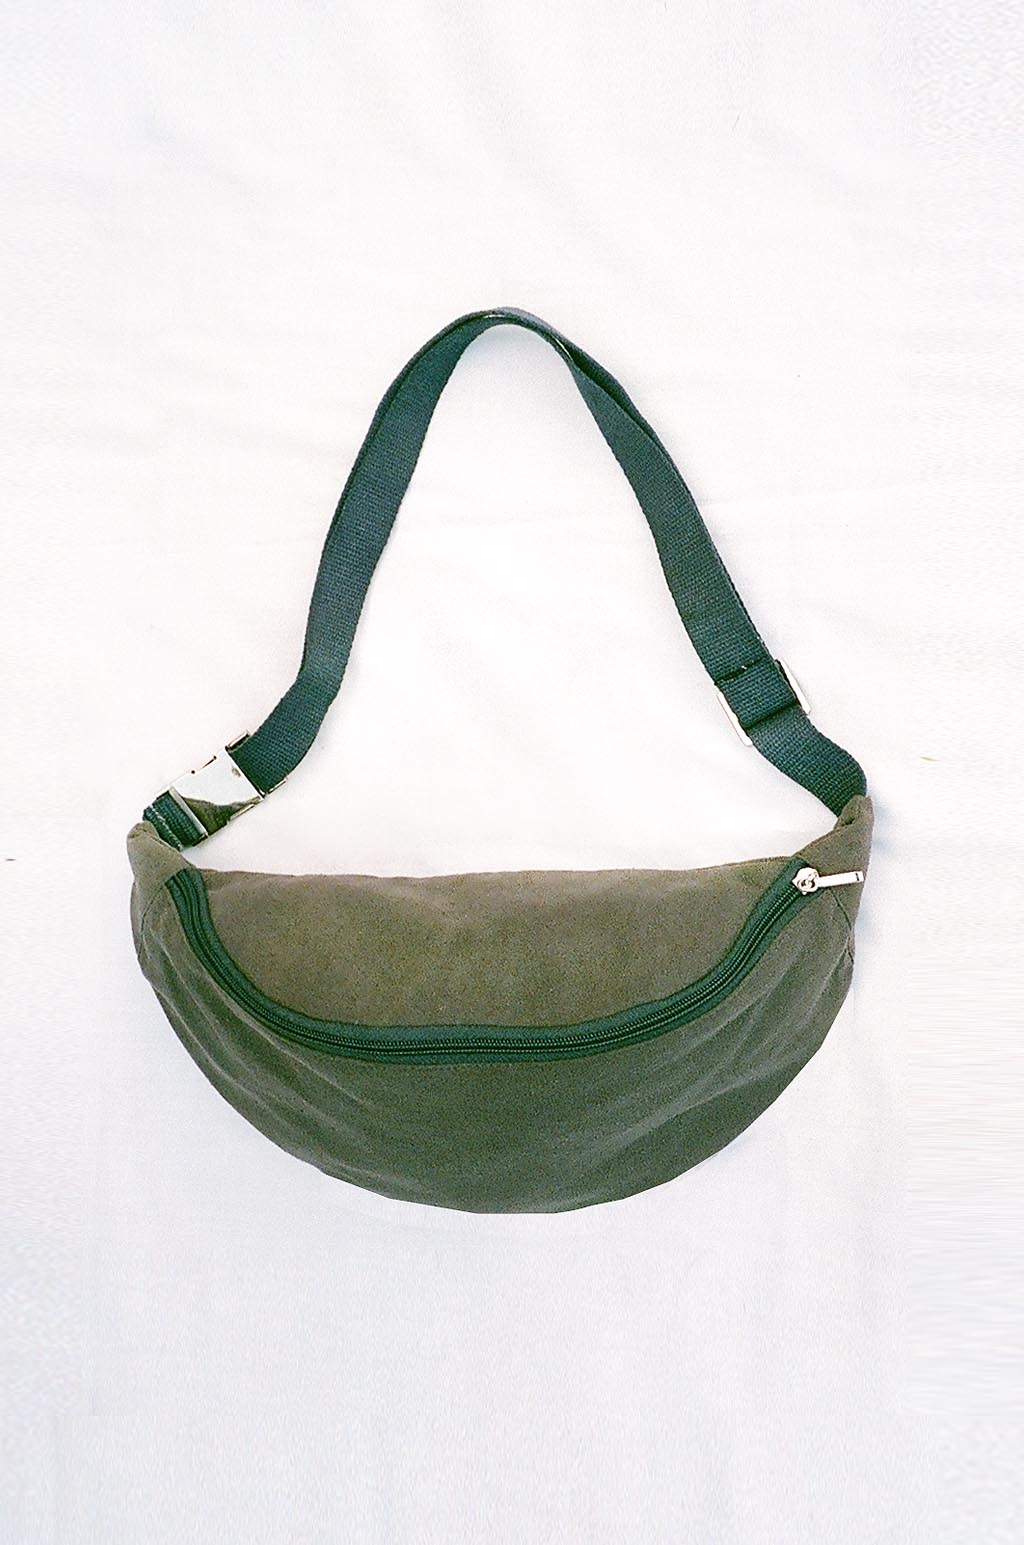 COLORANT RAW SILK FANNY PACK | CHARCOAL